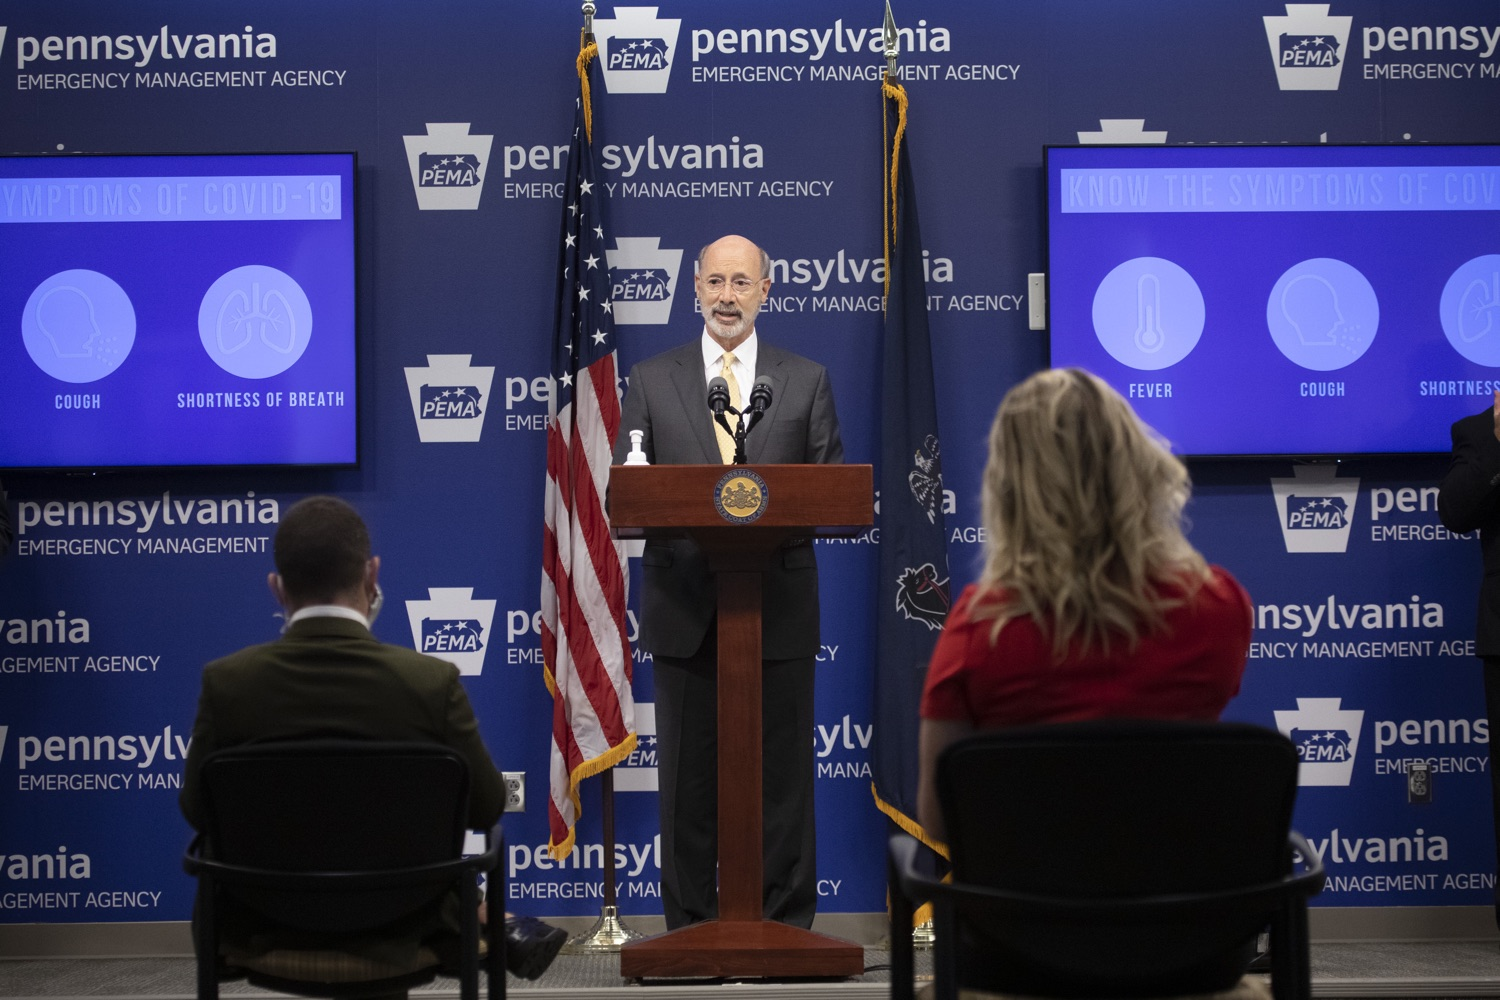 """<a href=""""https://filesource.wostreaming.net/commonwealthofpa/photo/18201_gov_orasure_dz_003.jpg"""" target=""""_blank"""">⇣Download Photo<br></a>Pennsylvania Governor Tom Wolf speaking to the press.  Today, Governor Tom Wolf announced that OraSure Technologies Inc., a developer and manufacturer of rapid diagnostic tests, collection and stabilization devices headquartered in Northampton County, will expand its manufacturing operations in the Lehigh Valley, creating 177 new, full-time jobs and retaining 233 jobs.  Harrisburg, PA  August 11, 2020"""